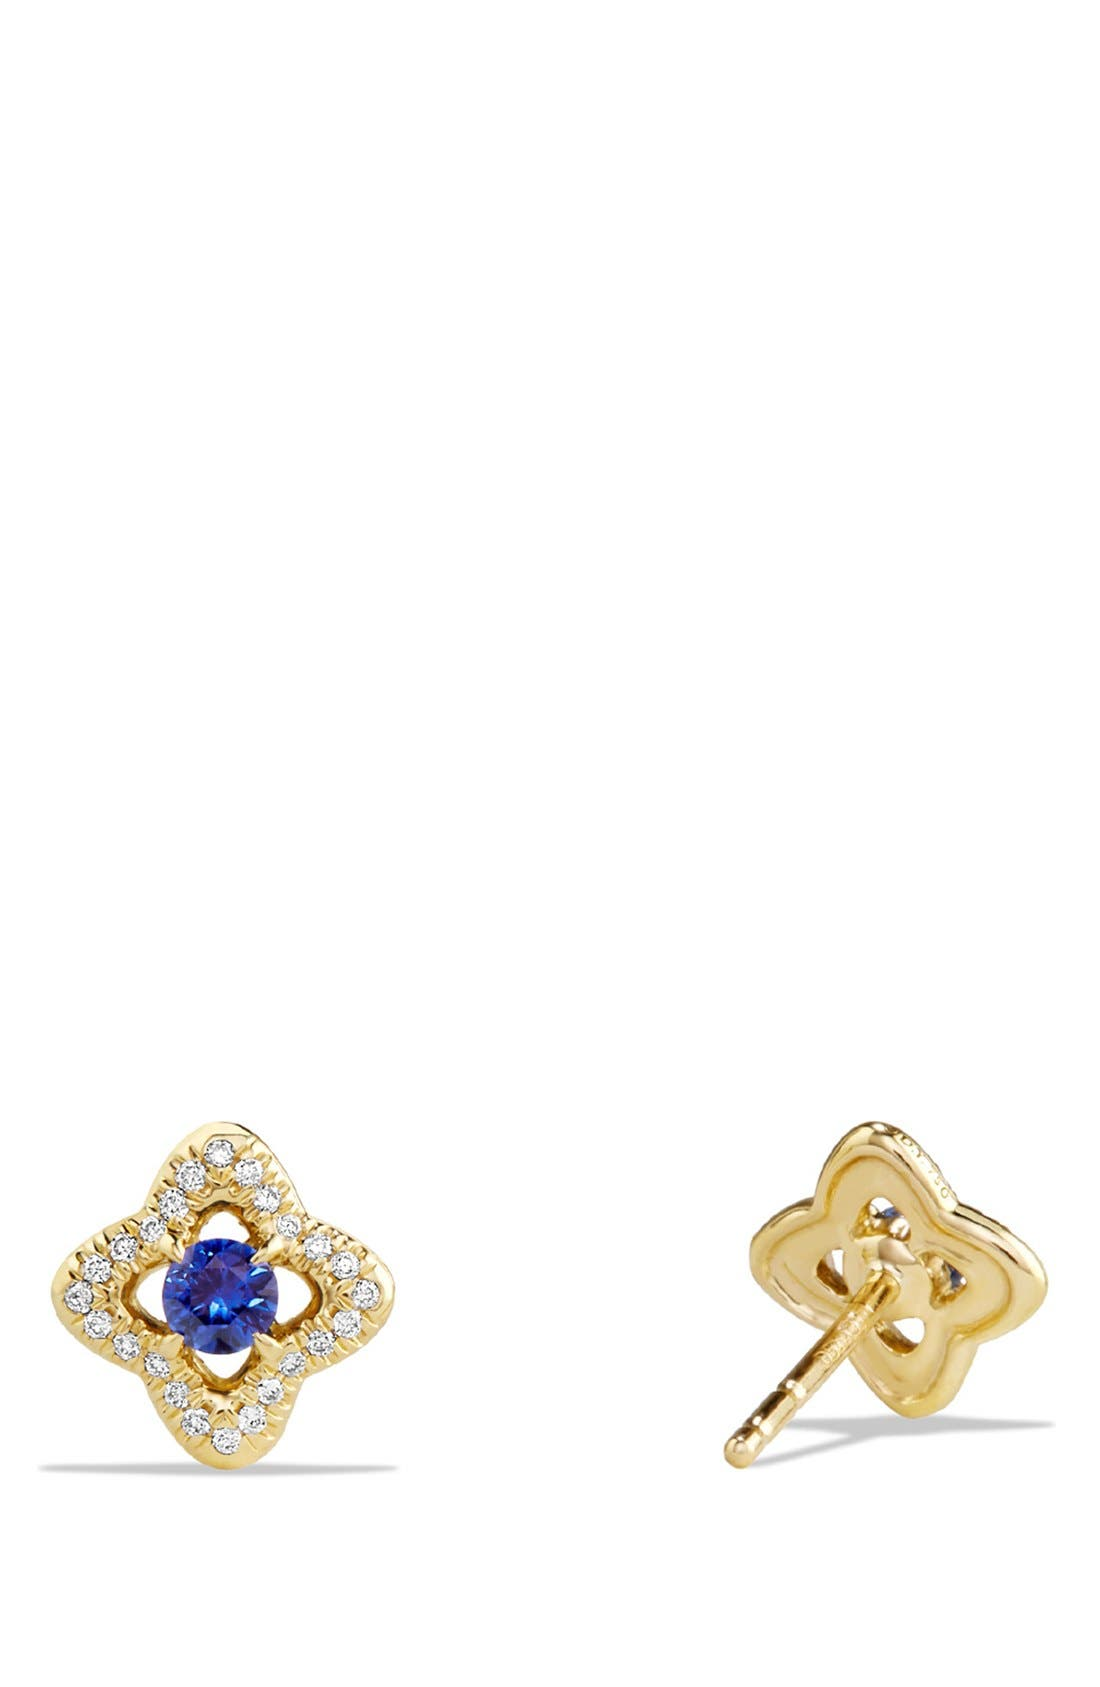 'Venetian Quatrefoil' Earrings with Precious Stones and Diamonds in 18K Gold,                             Alternate thumbnail 2, color,                             Blue Sapphire